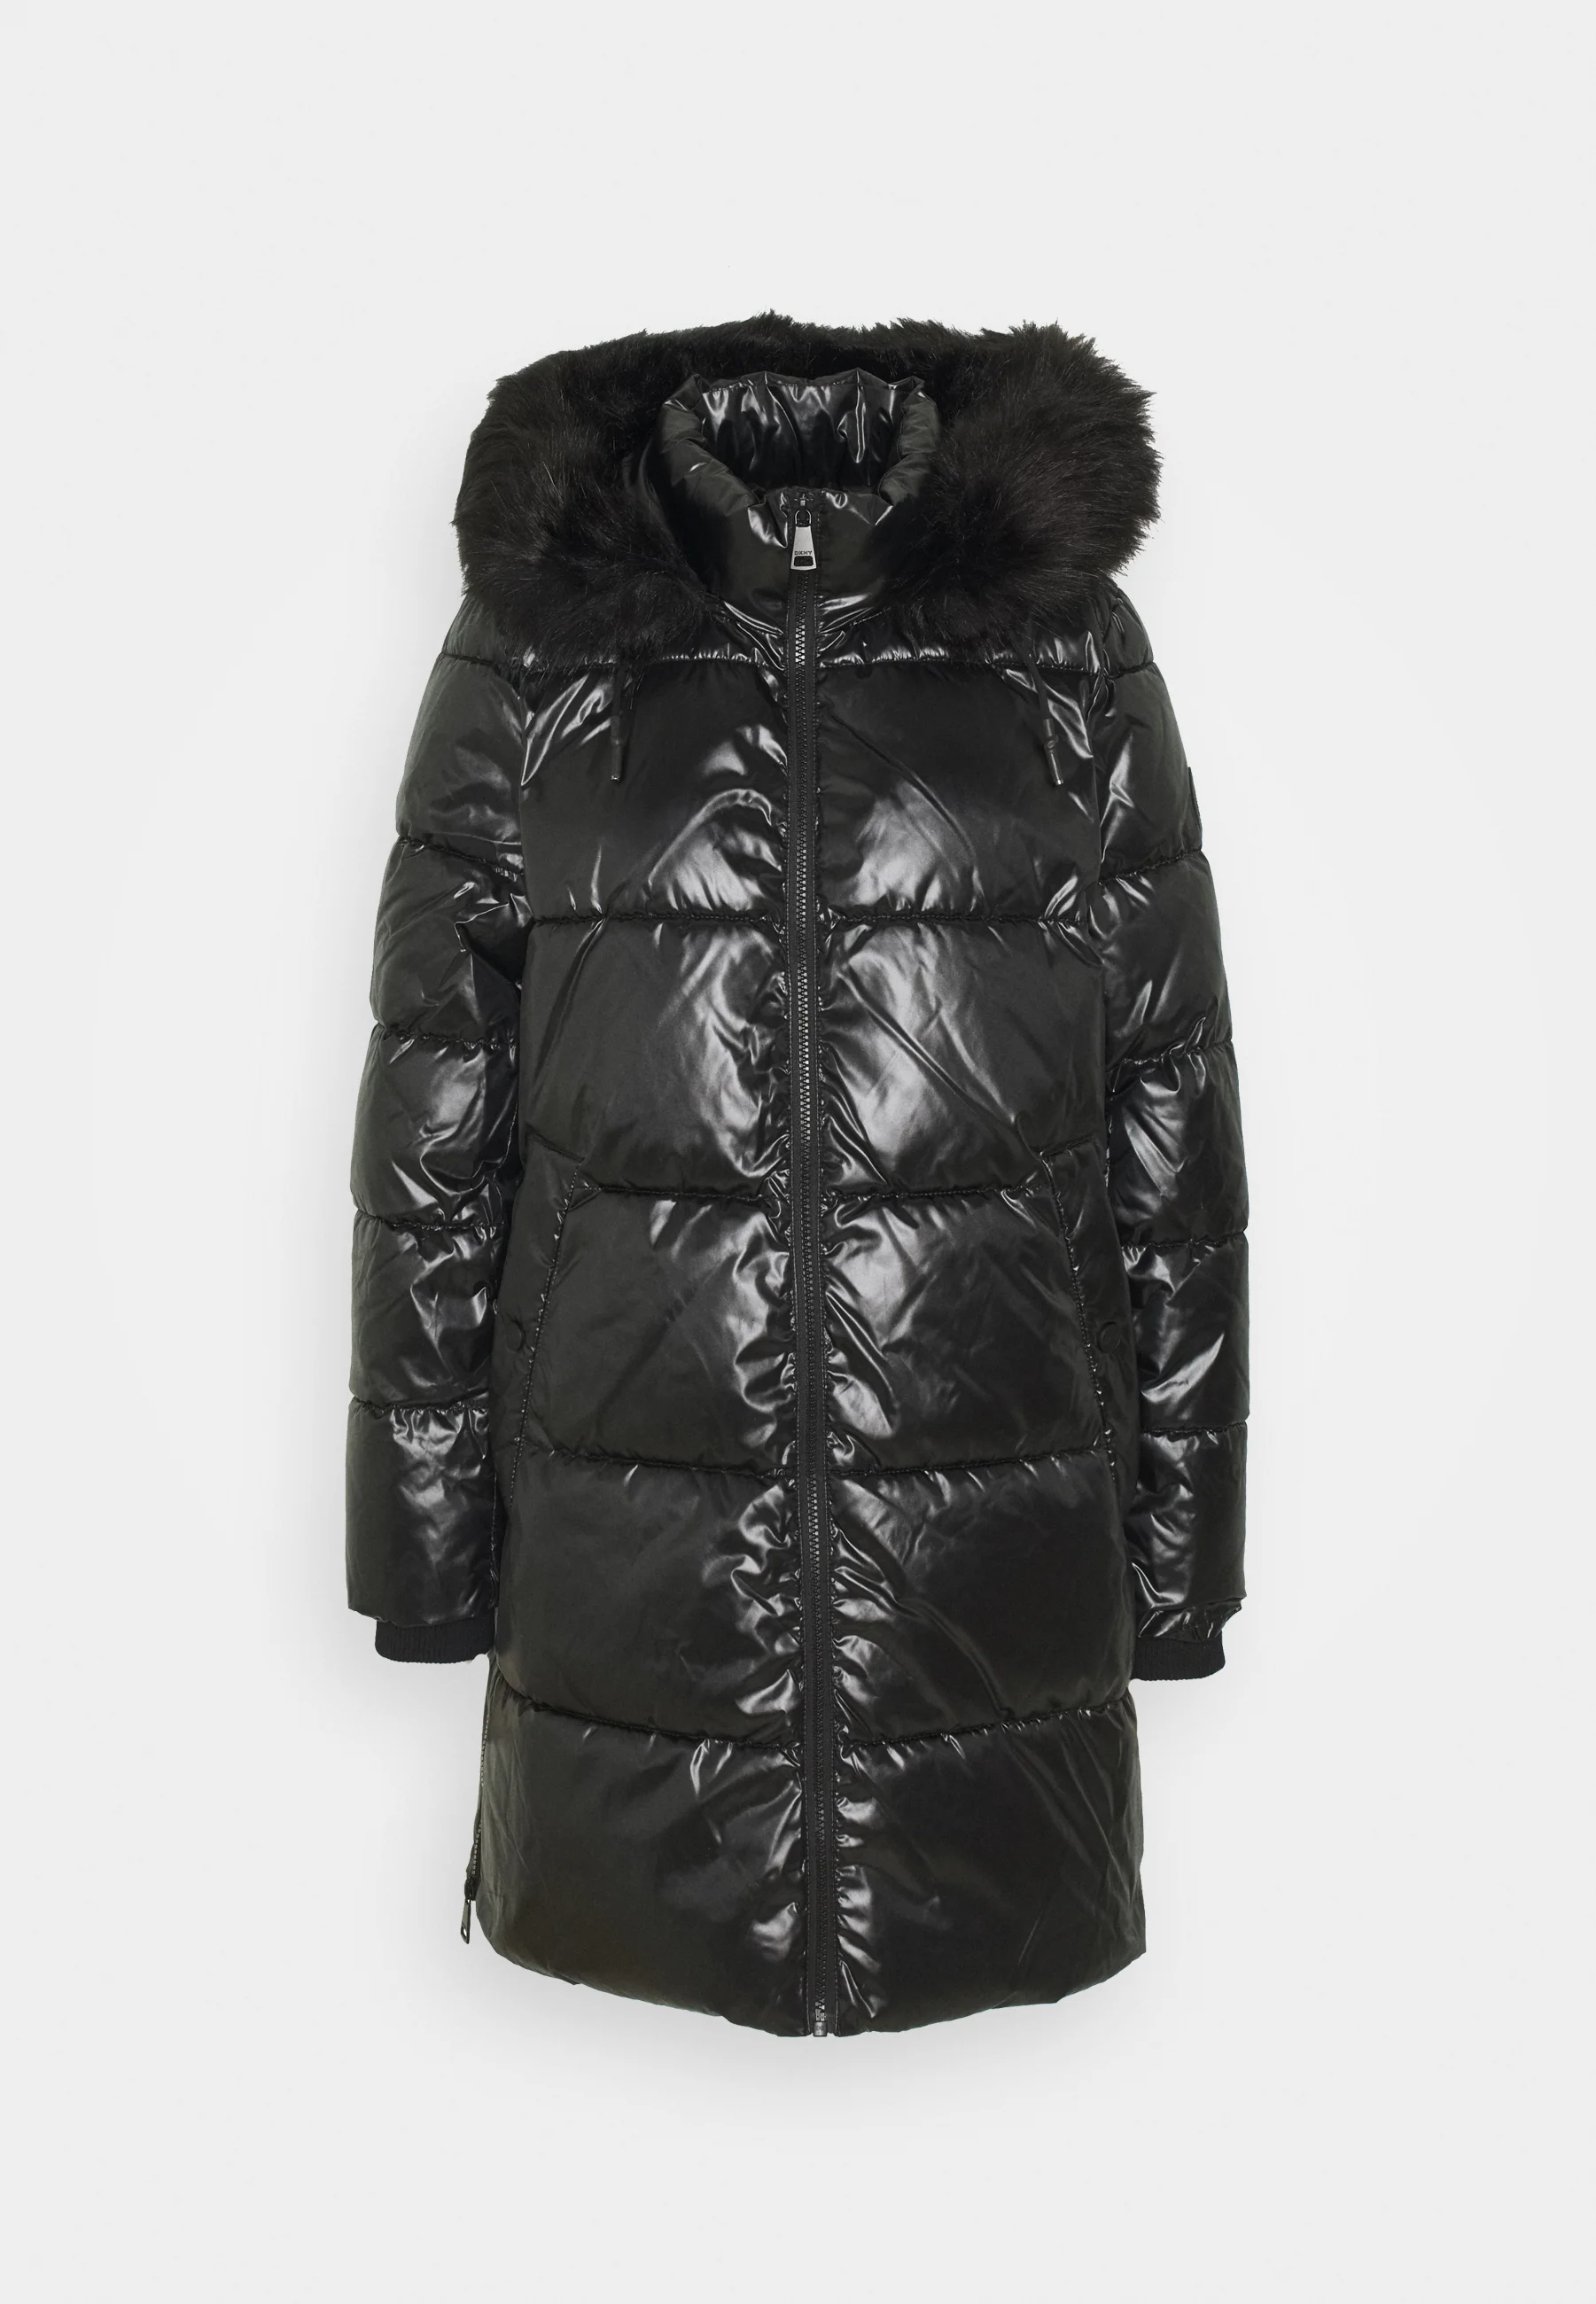 dkny long shiny puffer winter coat